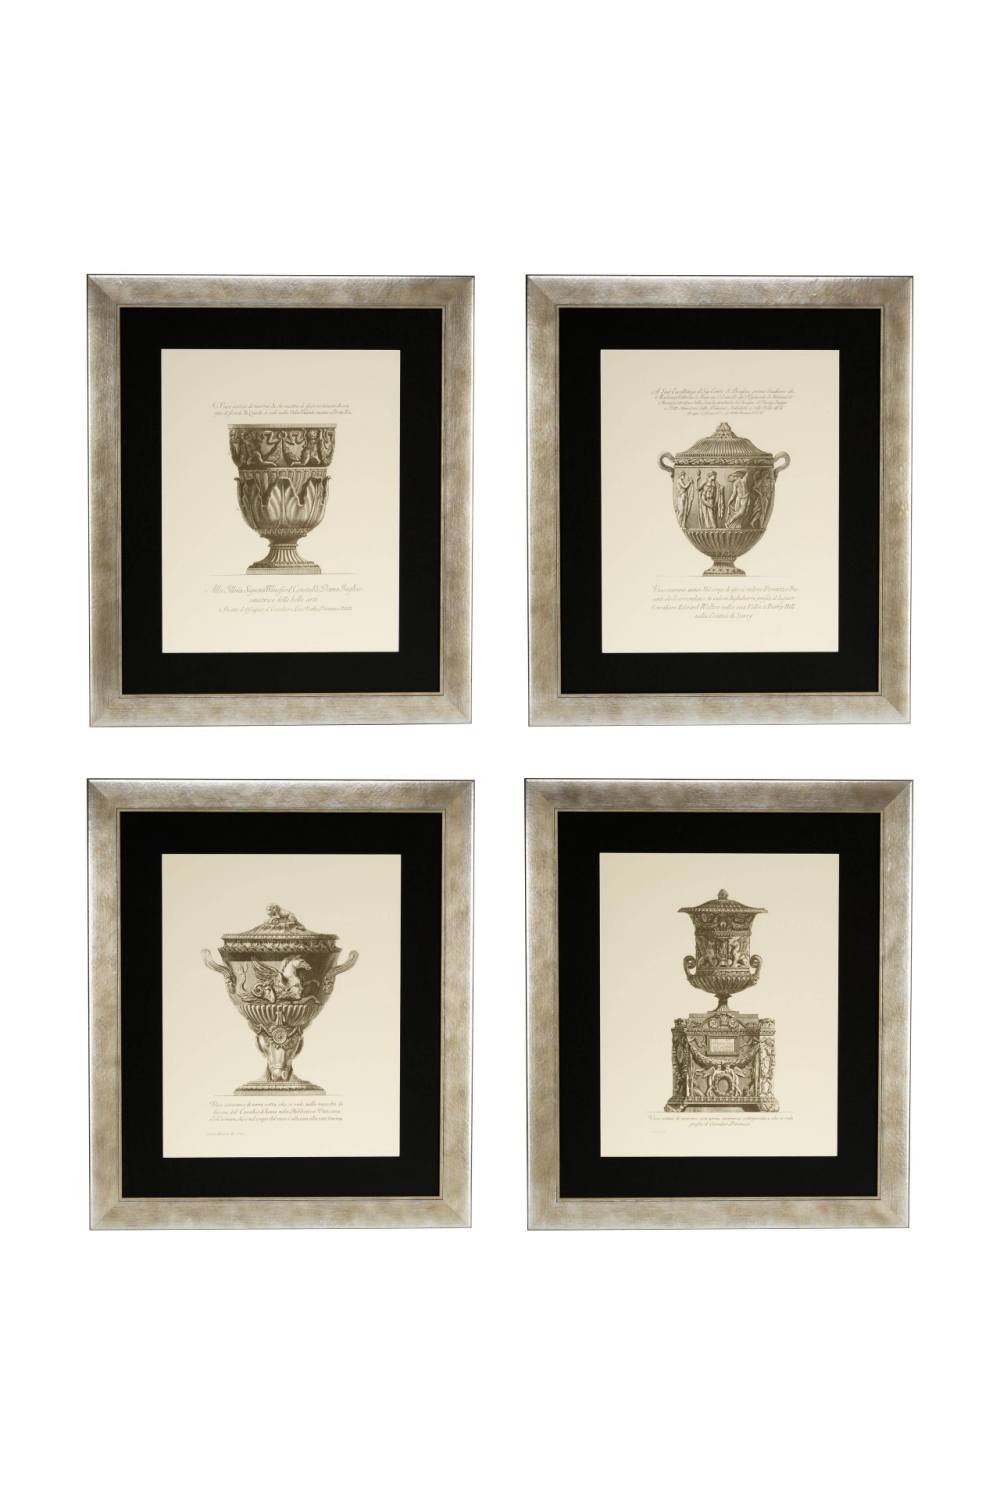 Antique Vases Prints | Eichholtz Giovanni Battista